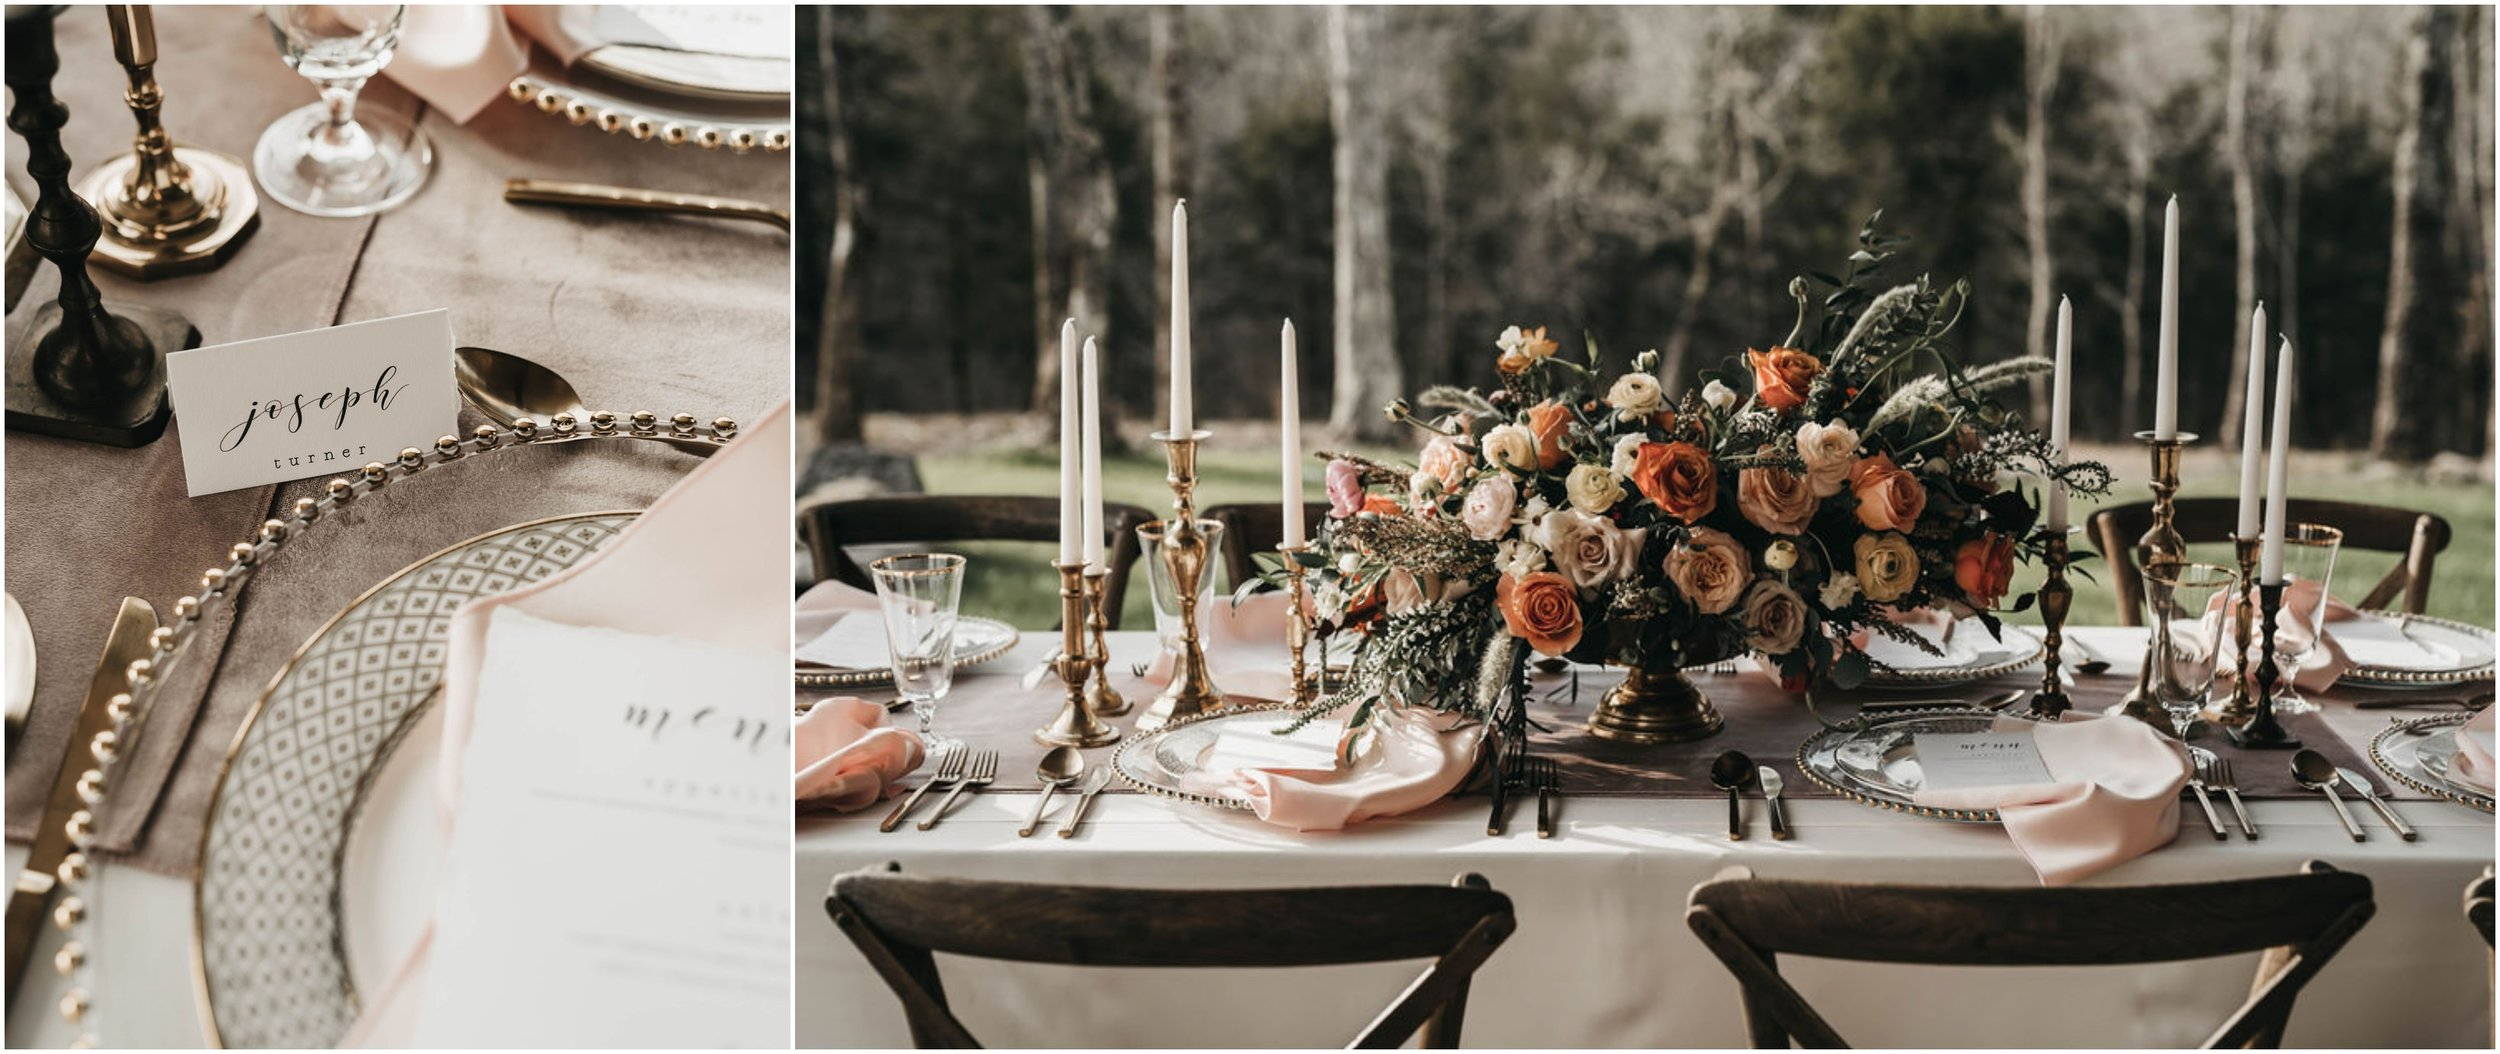 PHOTOGRAPHY -  RAFFERTY PHOTO , VENUE -  CANDLELIGHT RIDGE , FLORALS -  WHITE MAGNOLIA FLORAL , PLACE SETTINGS -  CHATTANOOGA TENT , LINENS -  WHITE TABLE , SIGNAGE -  LIFE WELL LETTERED , STATIONARY -  WEBBCO GRAPHICS , VINTAGE RENTALS -  THE COPPER QUAIL